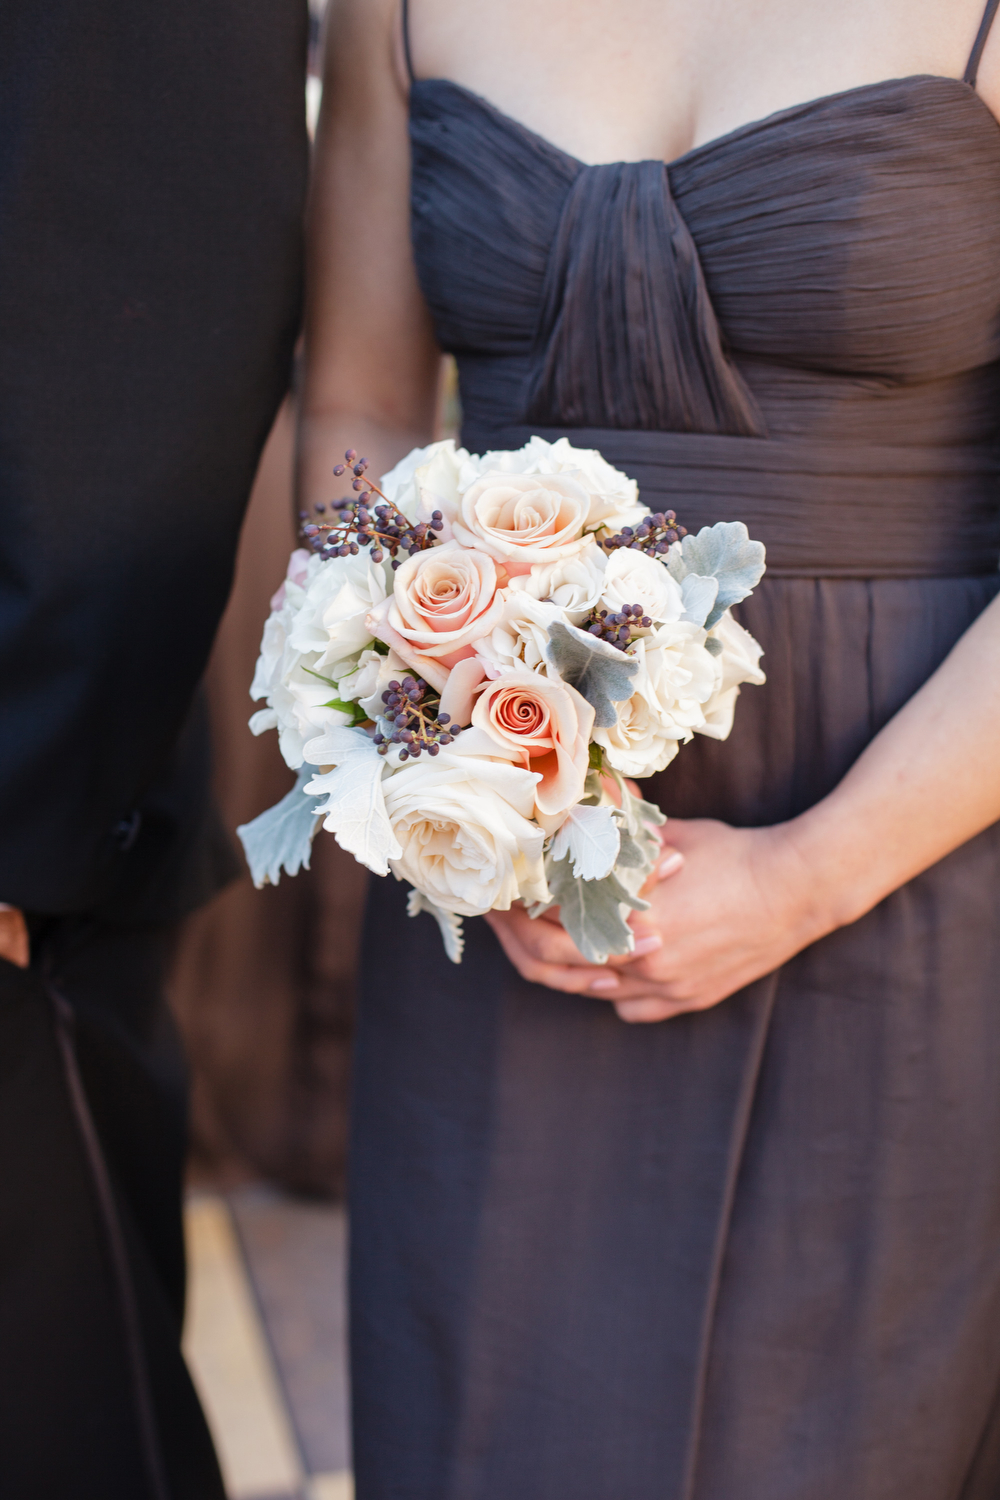 Grey bridesmaids dresses | Blush and berry bridesmaid bouquet| How to transform an open ballroom with stunning decor | Sapphire Events | Greer G Photography | Board of Trade | White and Gold Wedding | Winter Wedding Inspiration | White and Green Wedding | Ballroom wedding